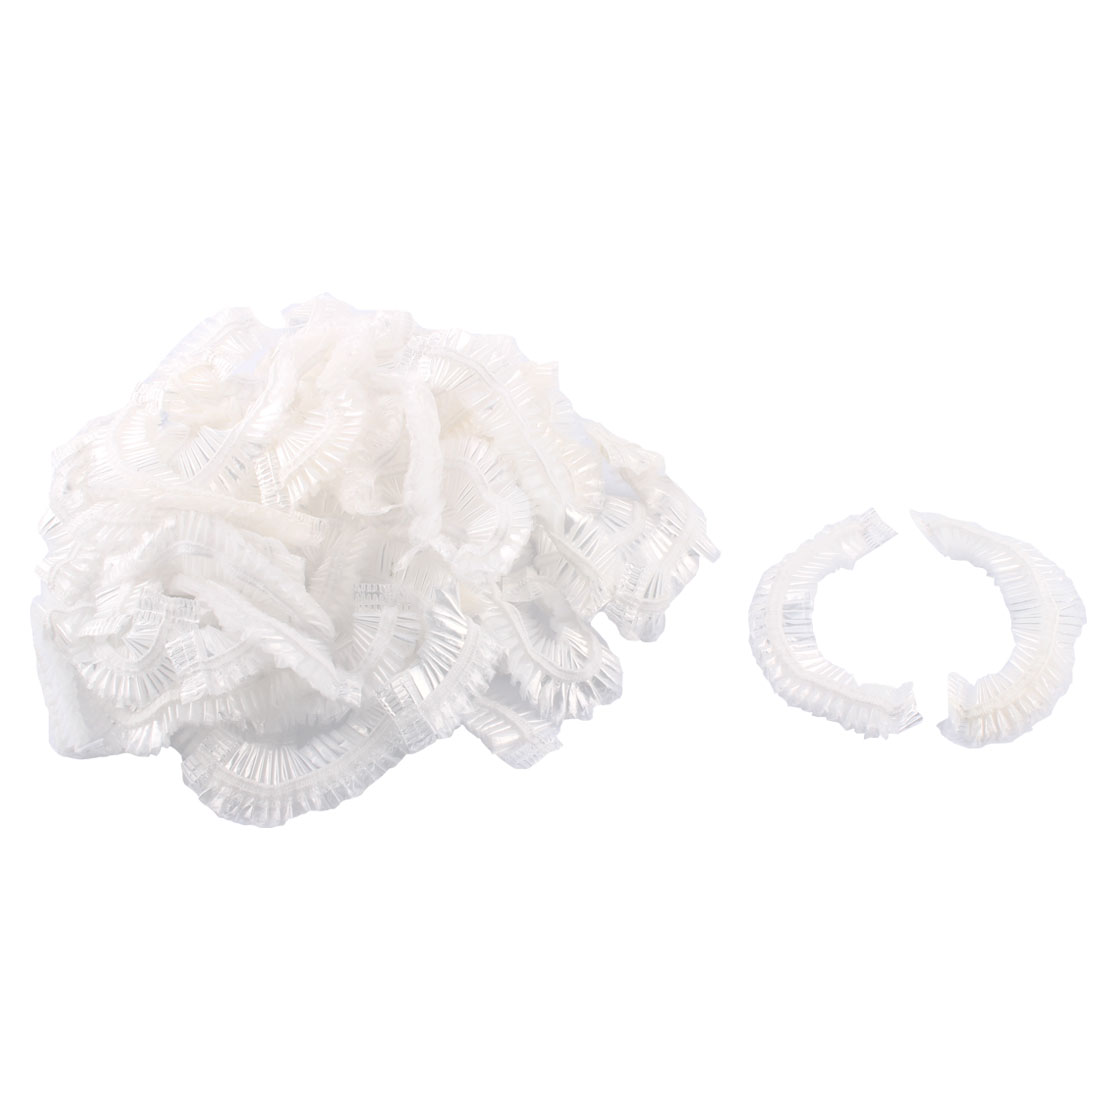 Plastic Elastic Bathroom Disposable Shower Bathing Cap Clear 50 Pcs